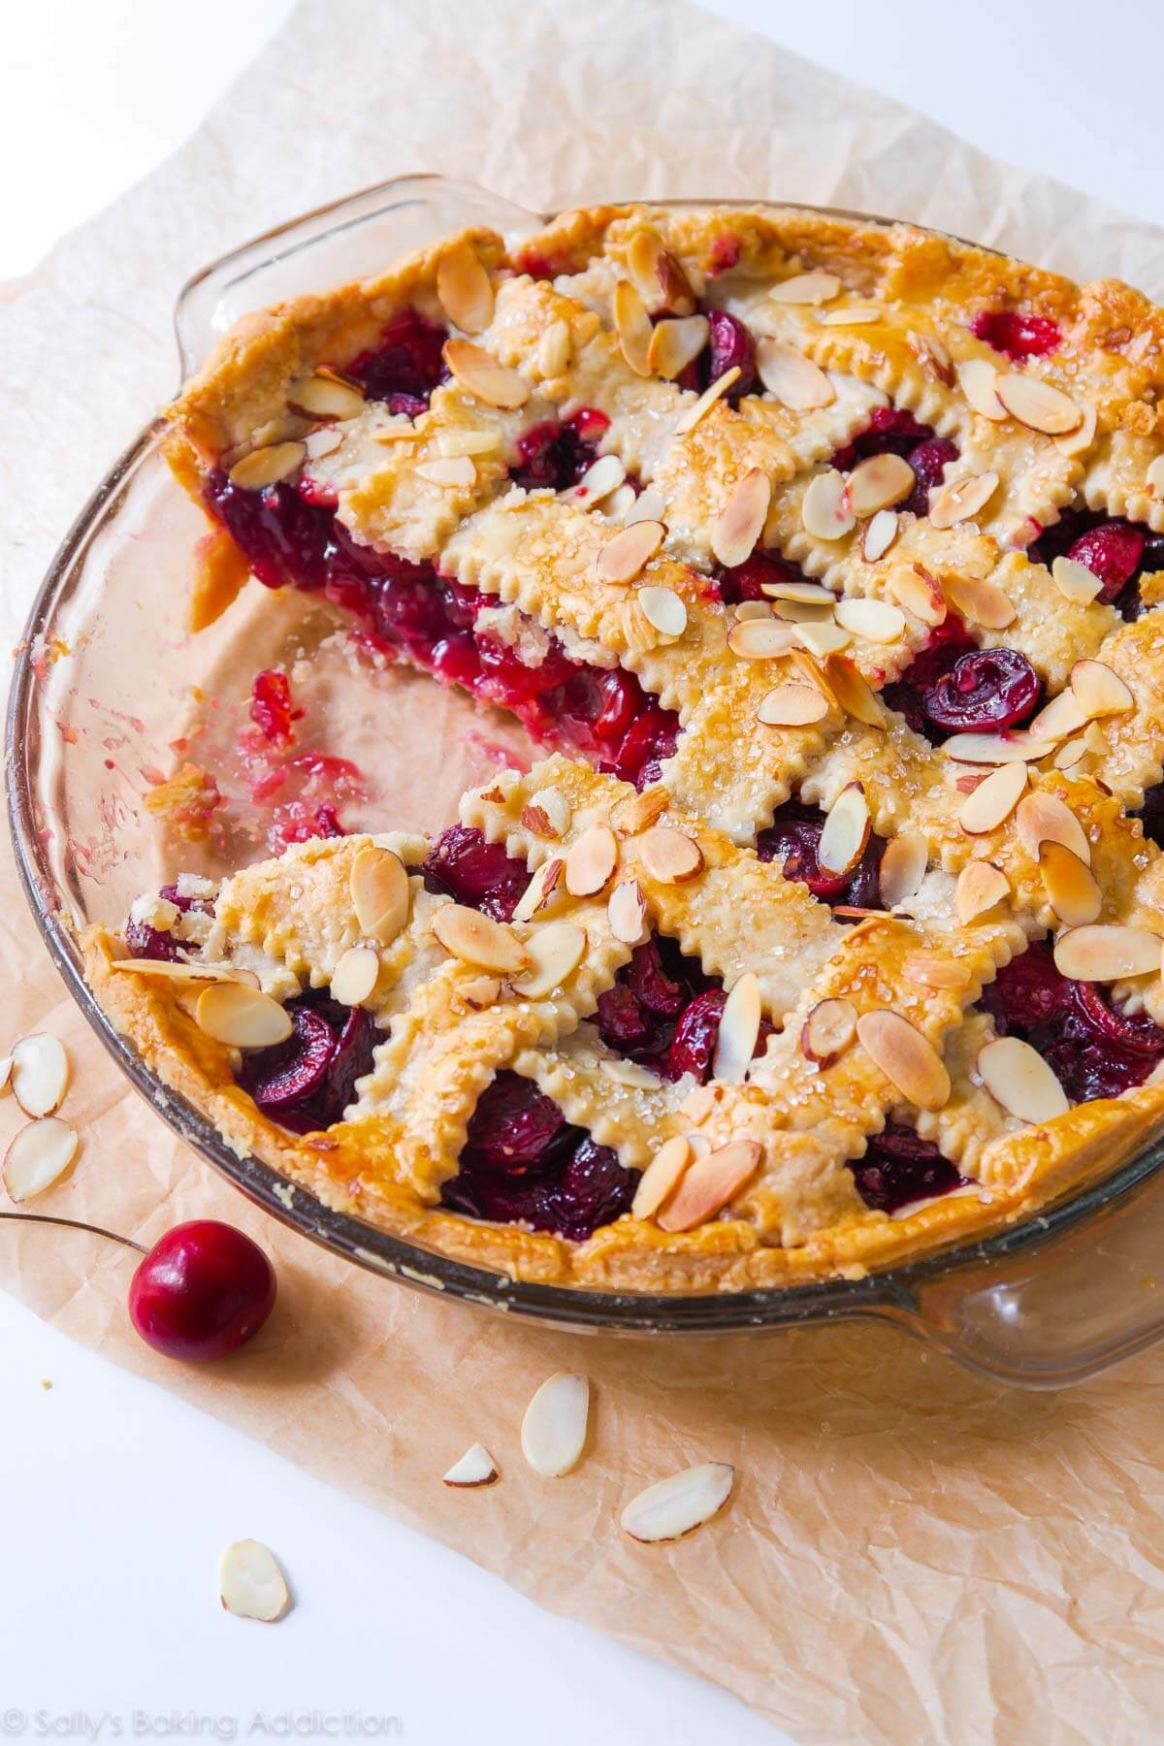 Sweet Cherry Pie with Toasted Almonds - Dessert Recipes Made With Cherry Pie Filling